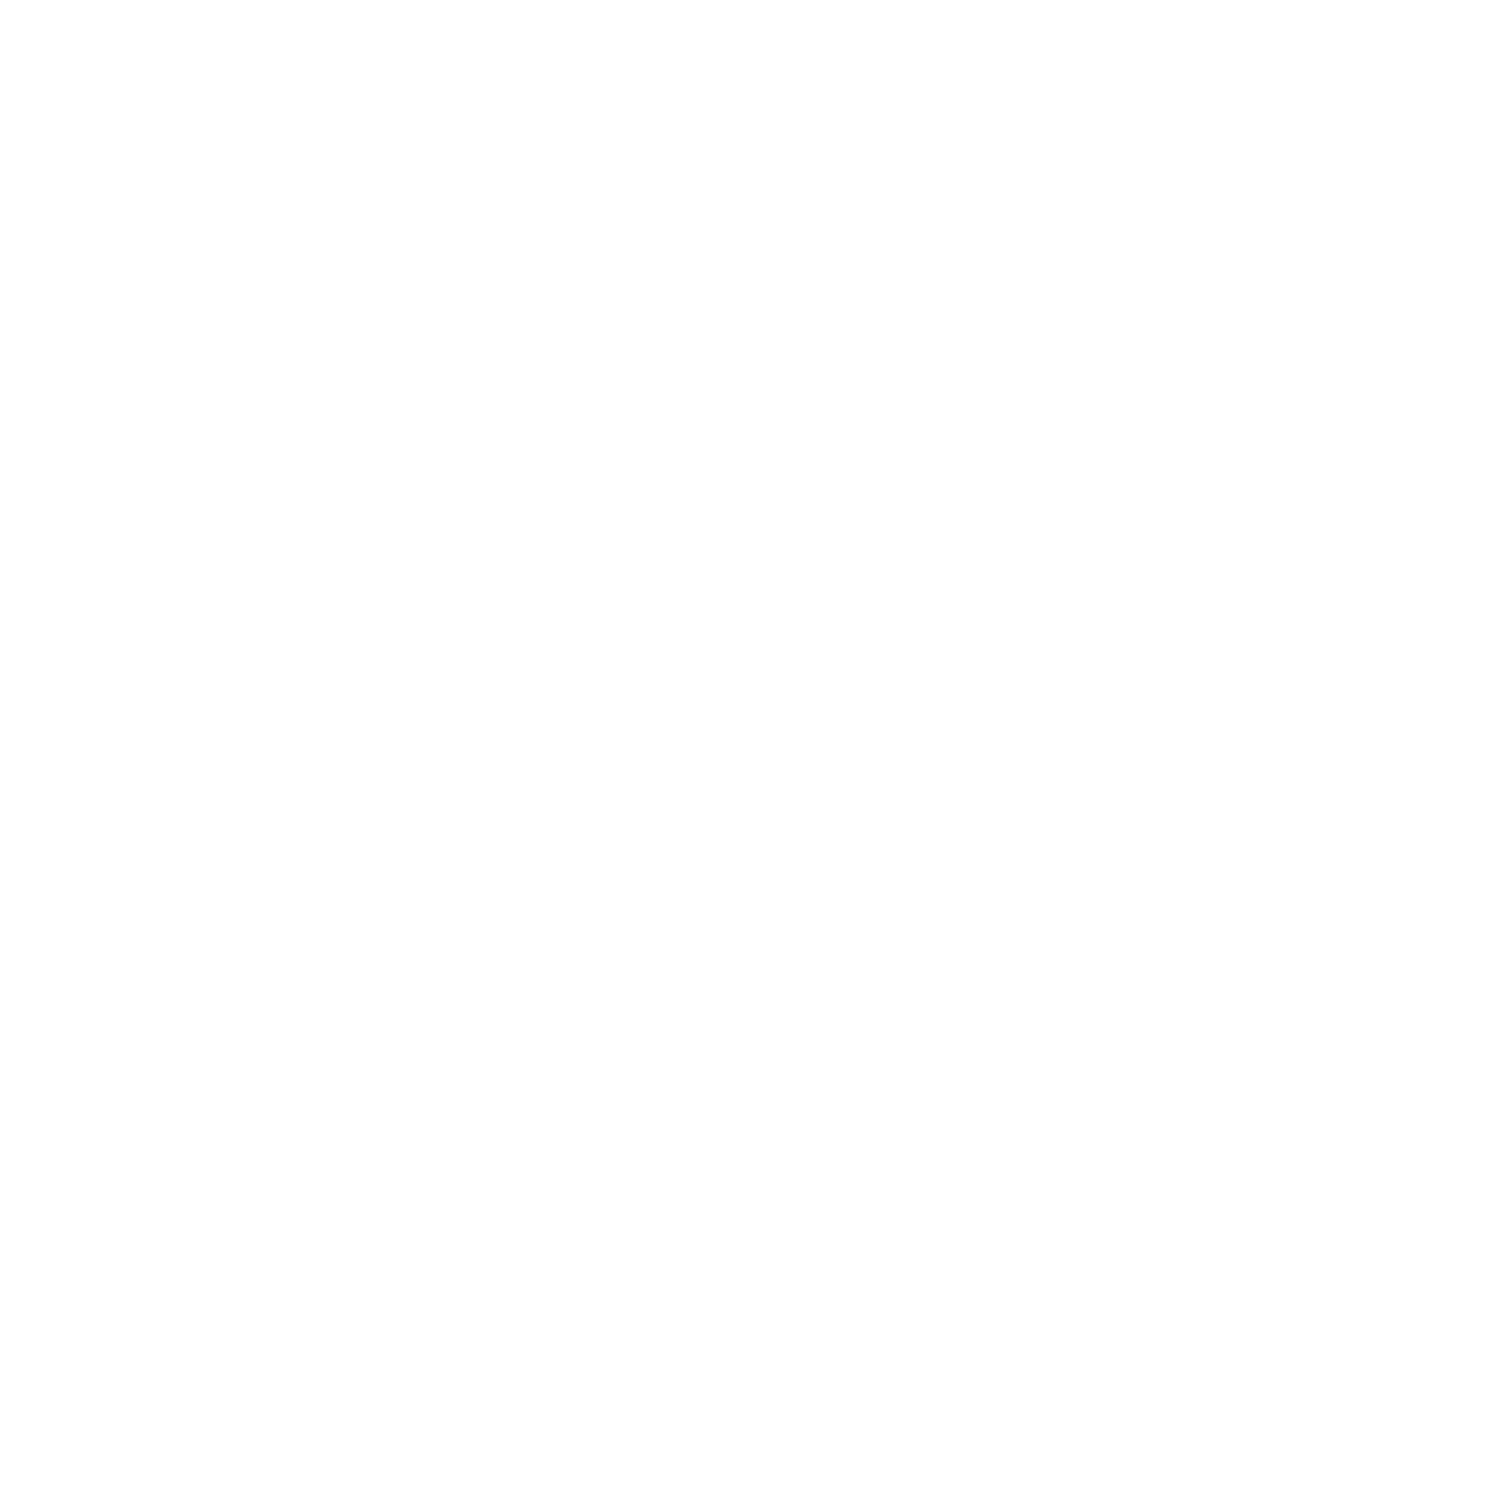 The ONE: Collective